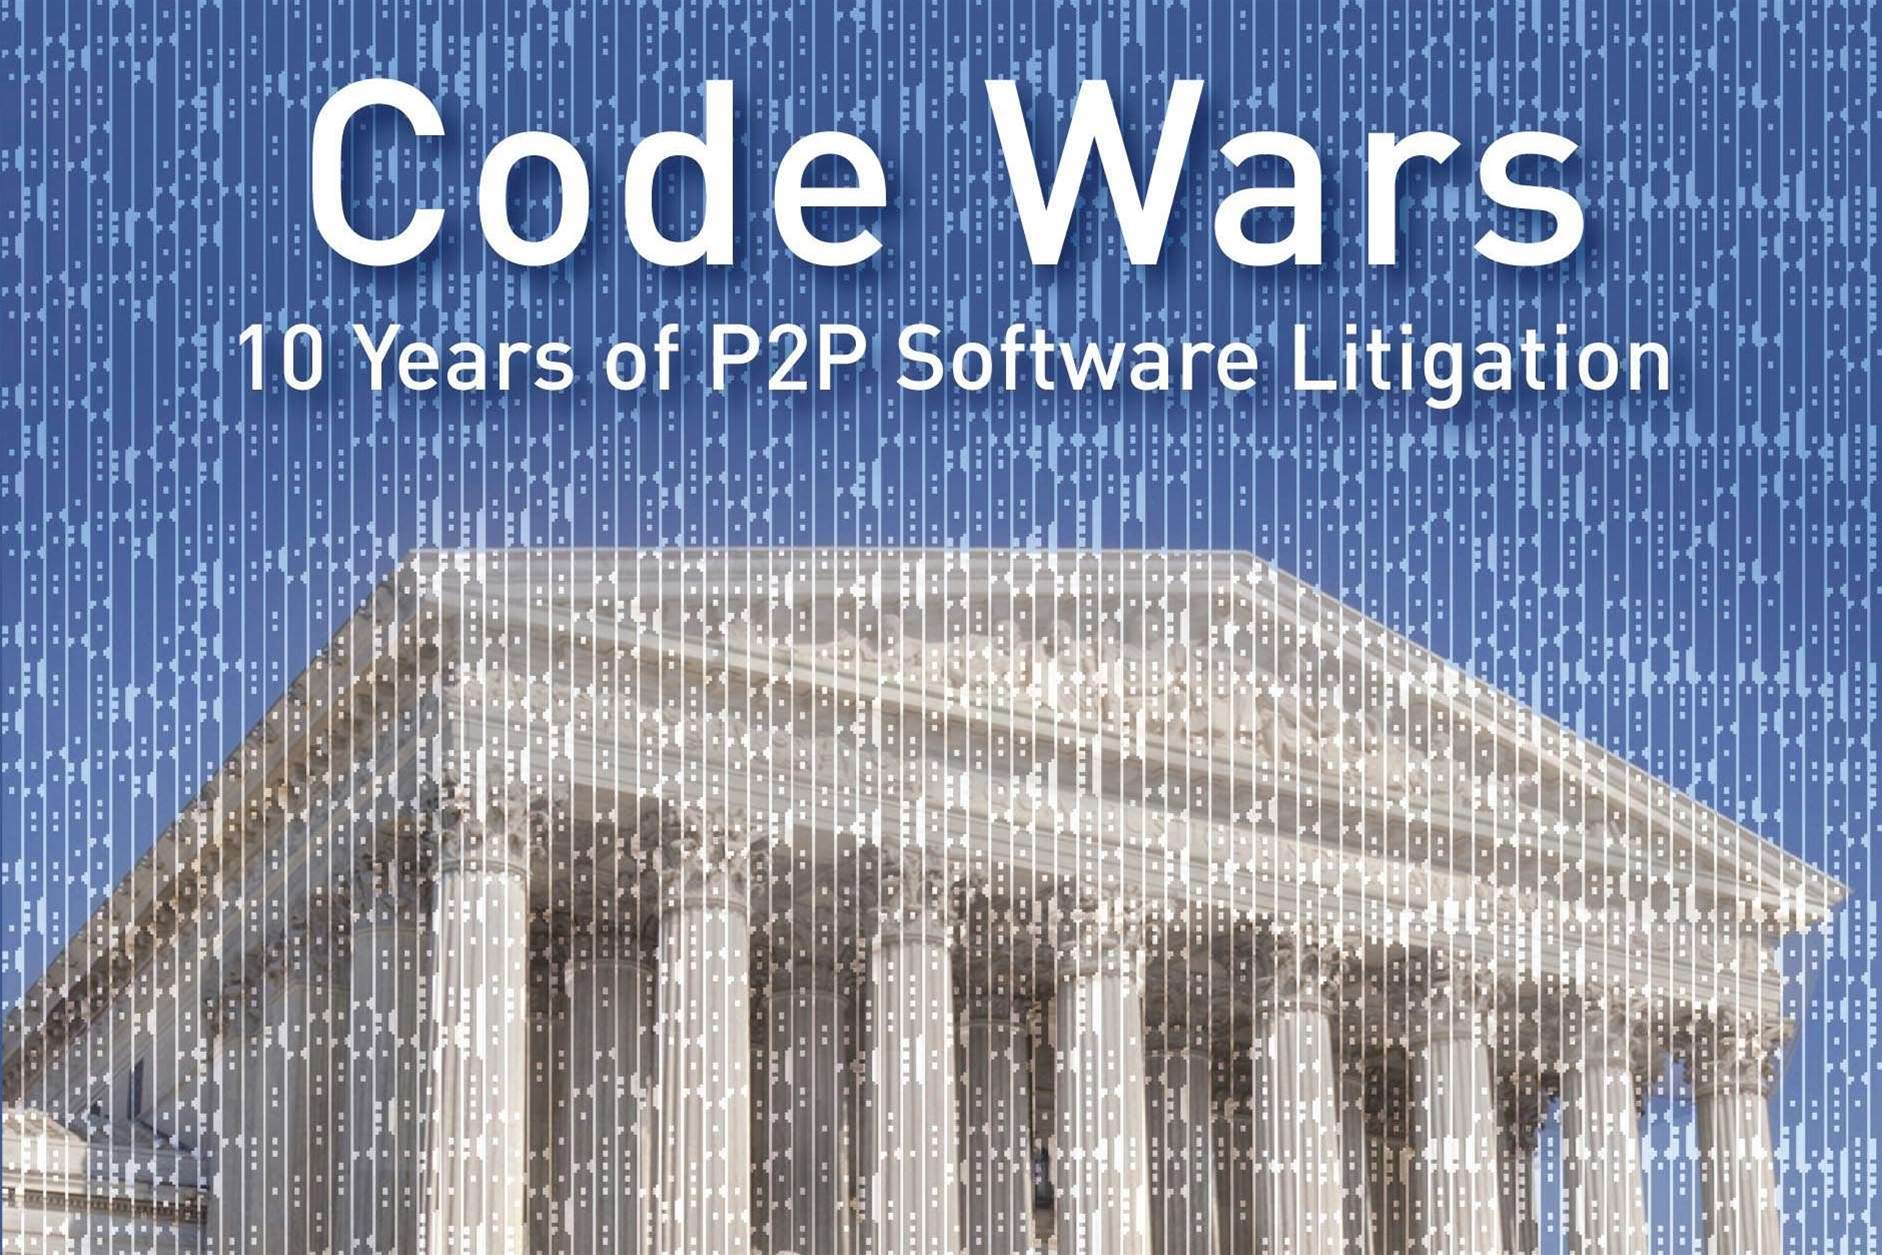 How litigation only spurred on P2P file sharing